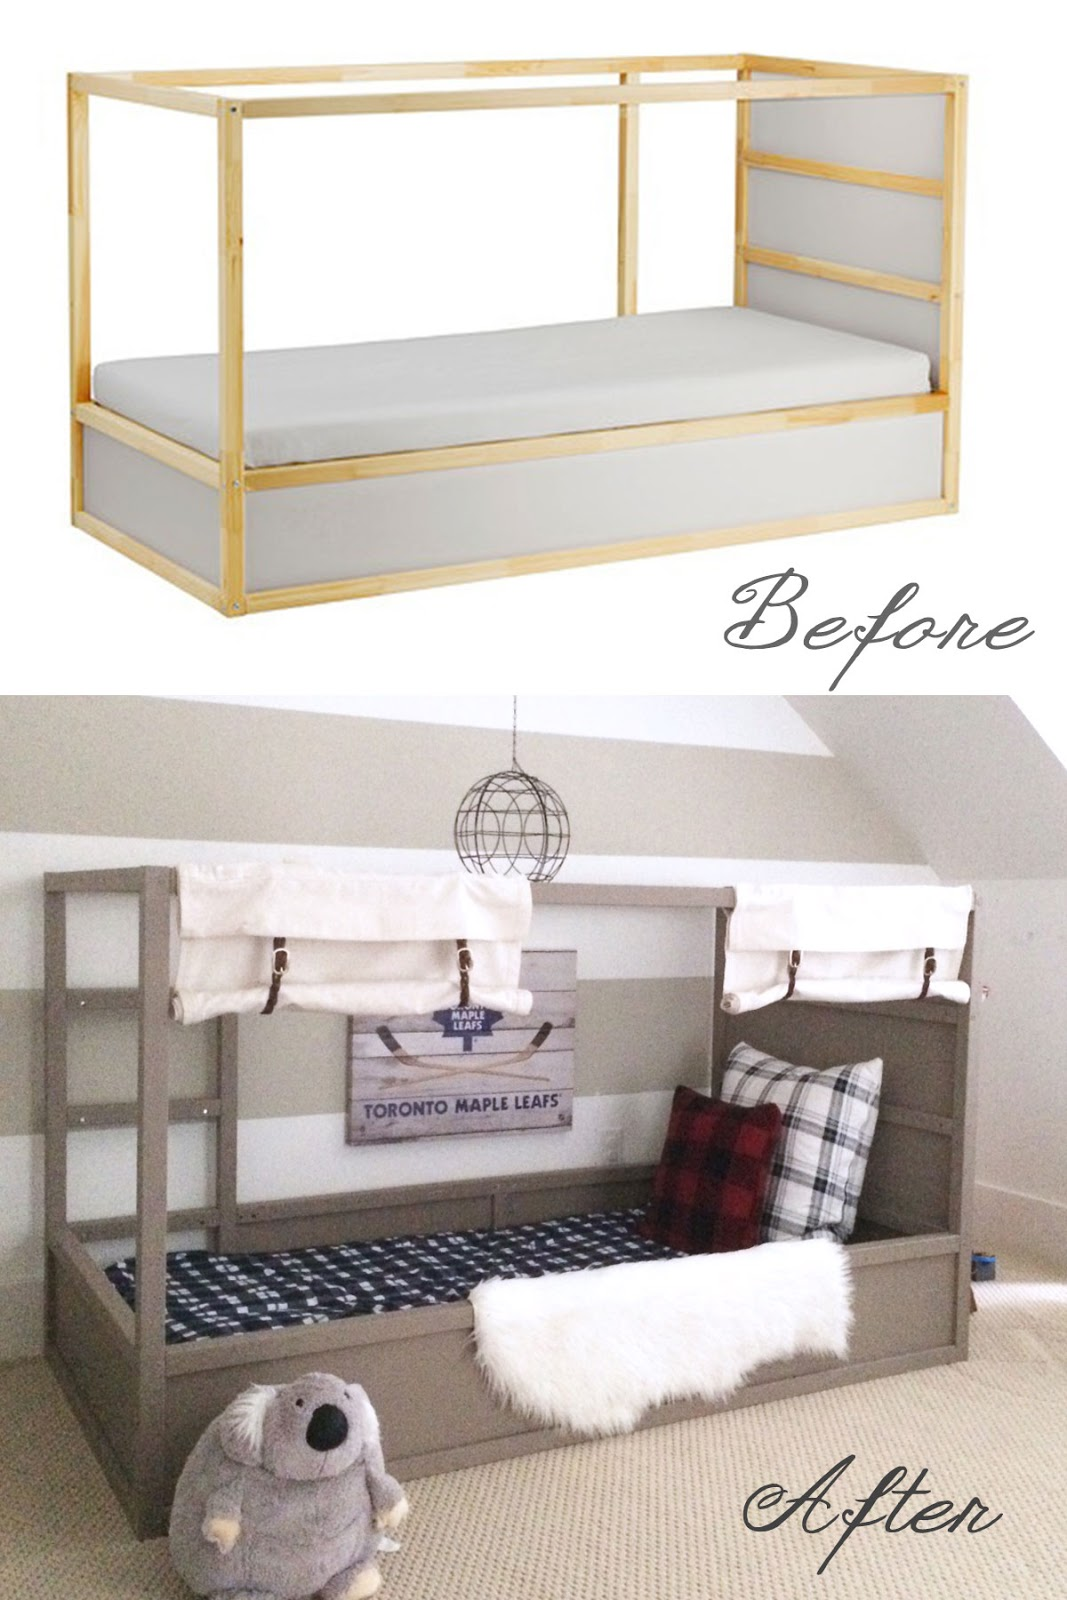 ikea kura bed hack option 2 with diy ball harlow thistle home design lifestyle diy. Black Bedroom Furniture Sets. Home Design Ideas